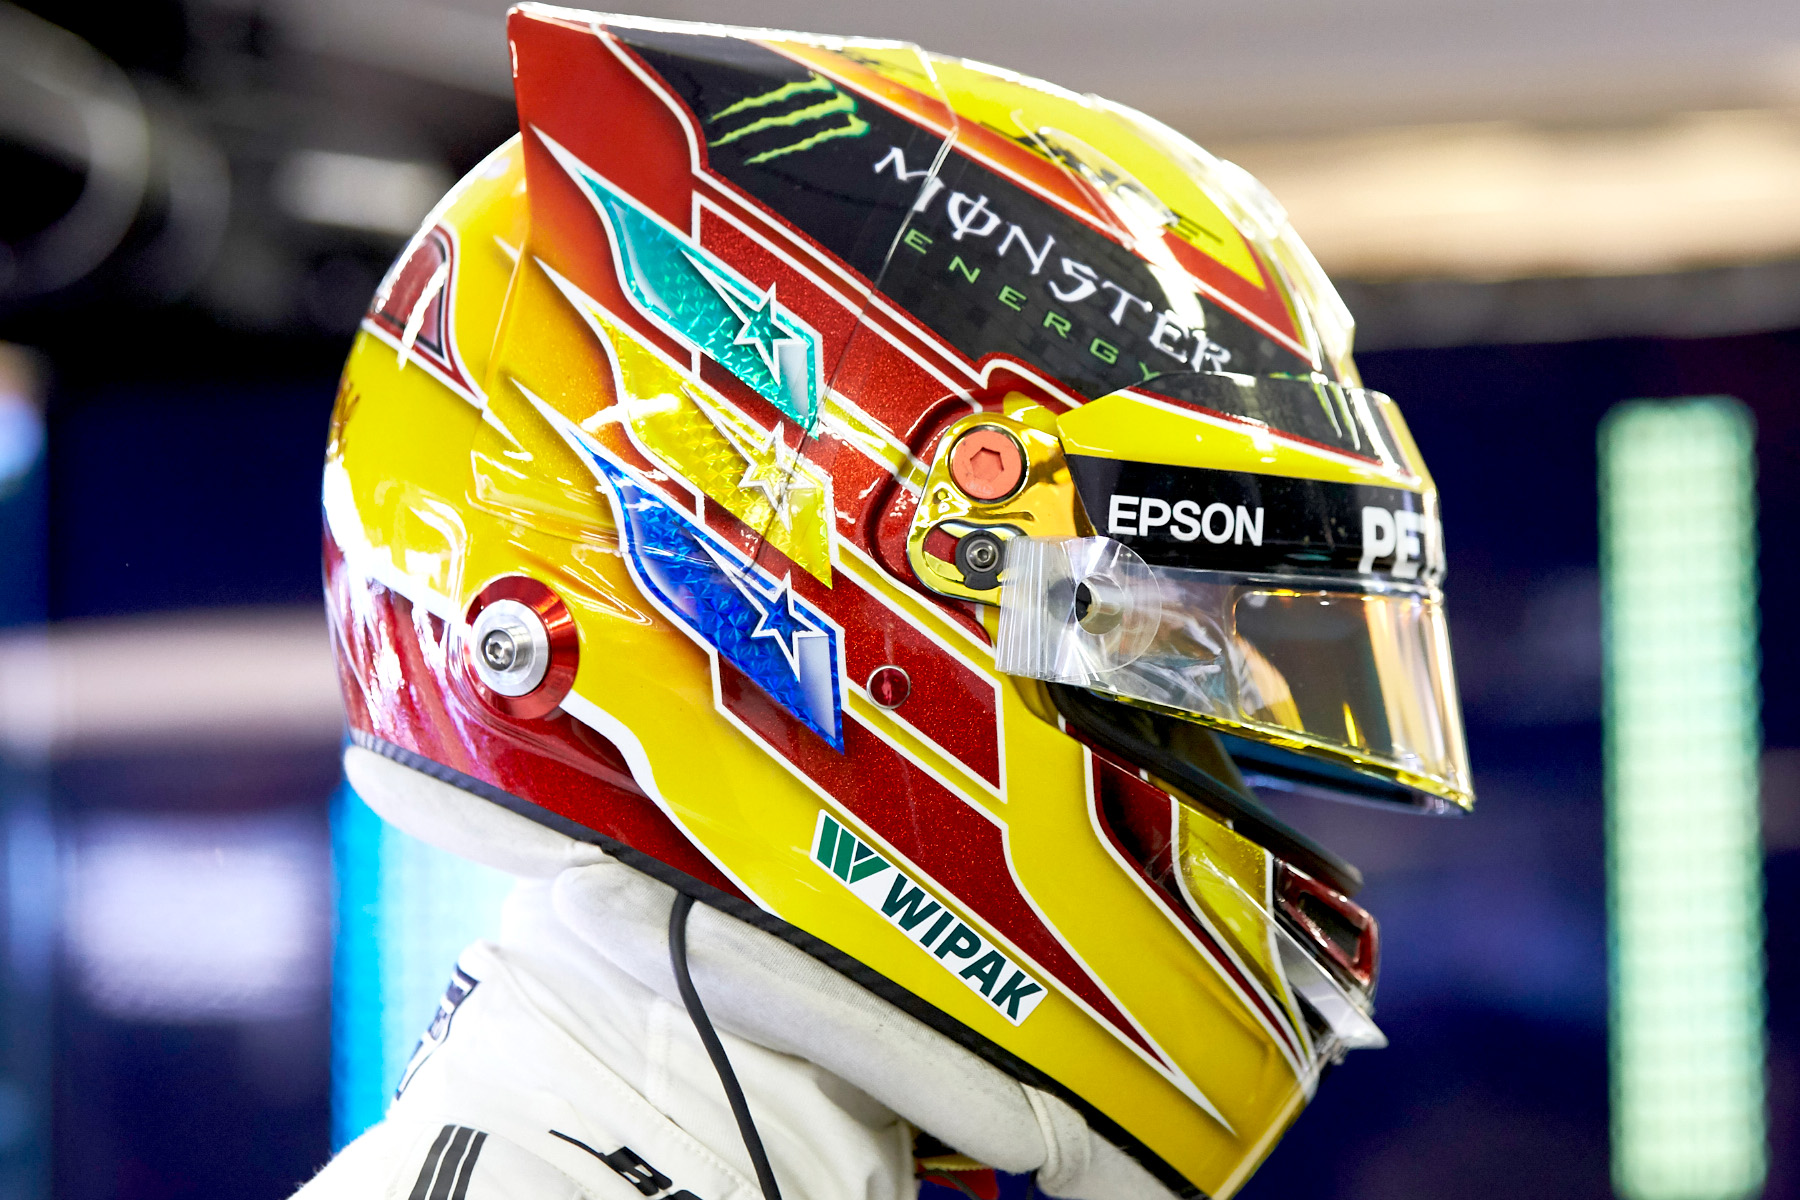 Lewis Hamilton at the 2017 Hungarian Grand Prix.